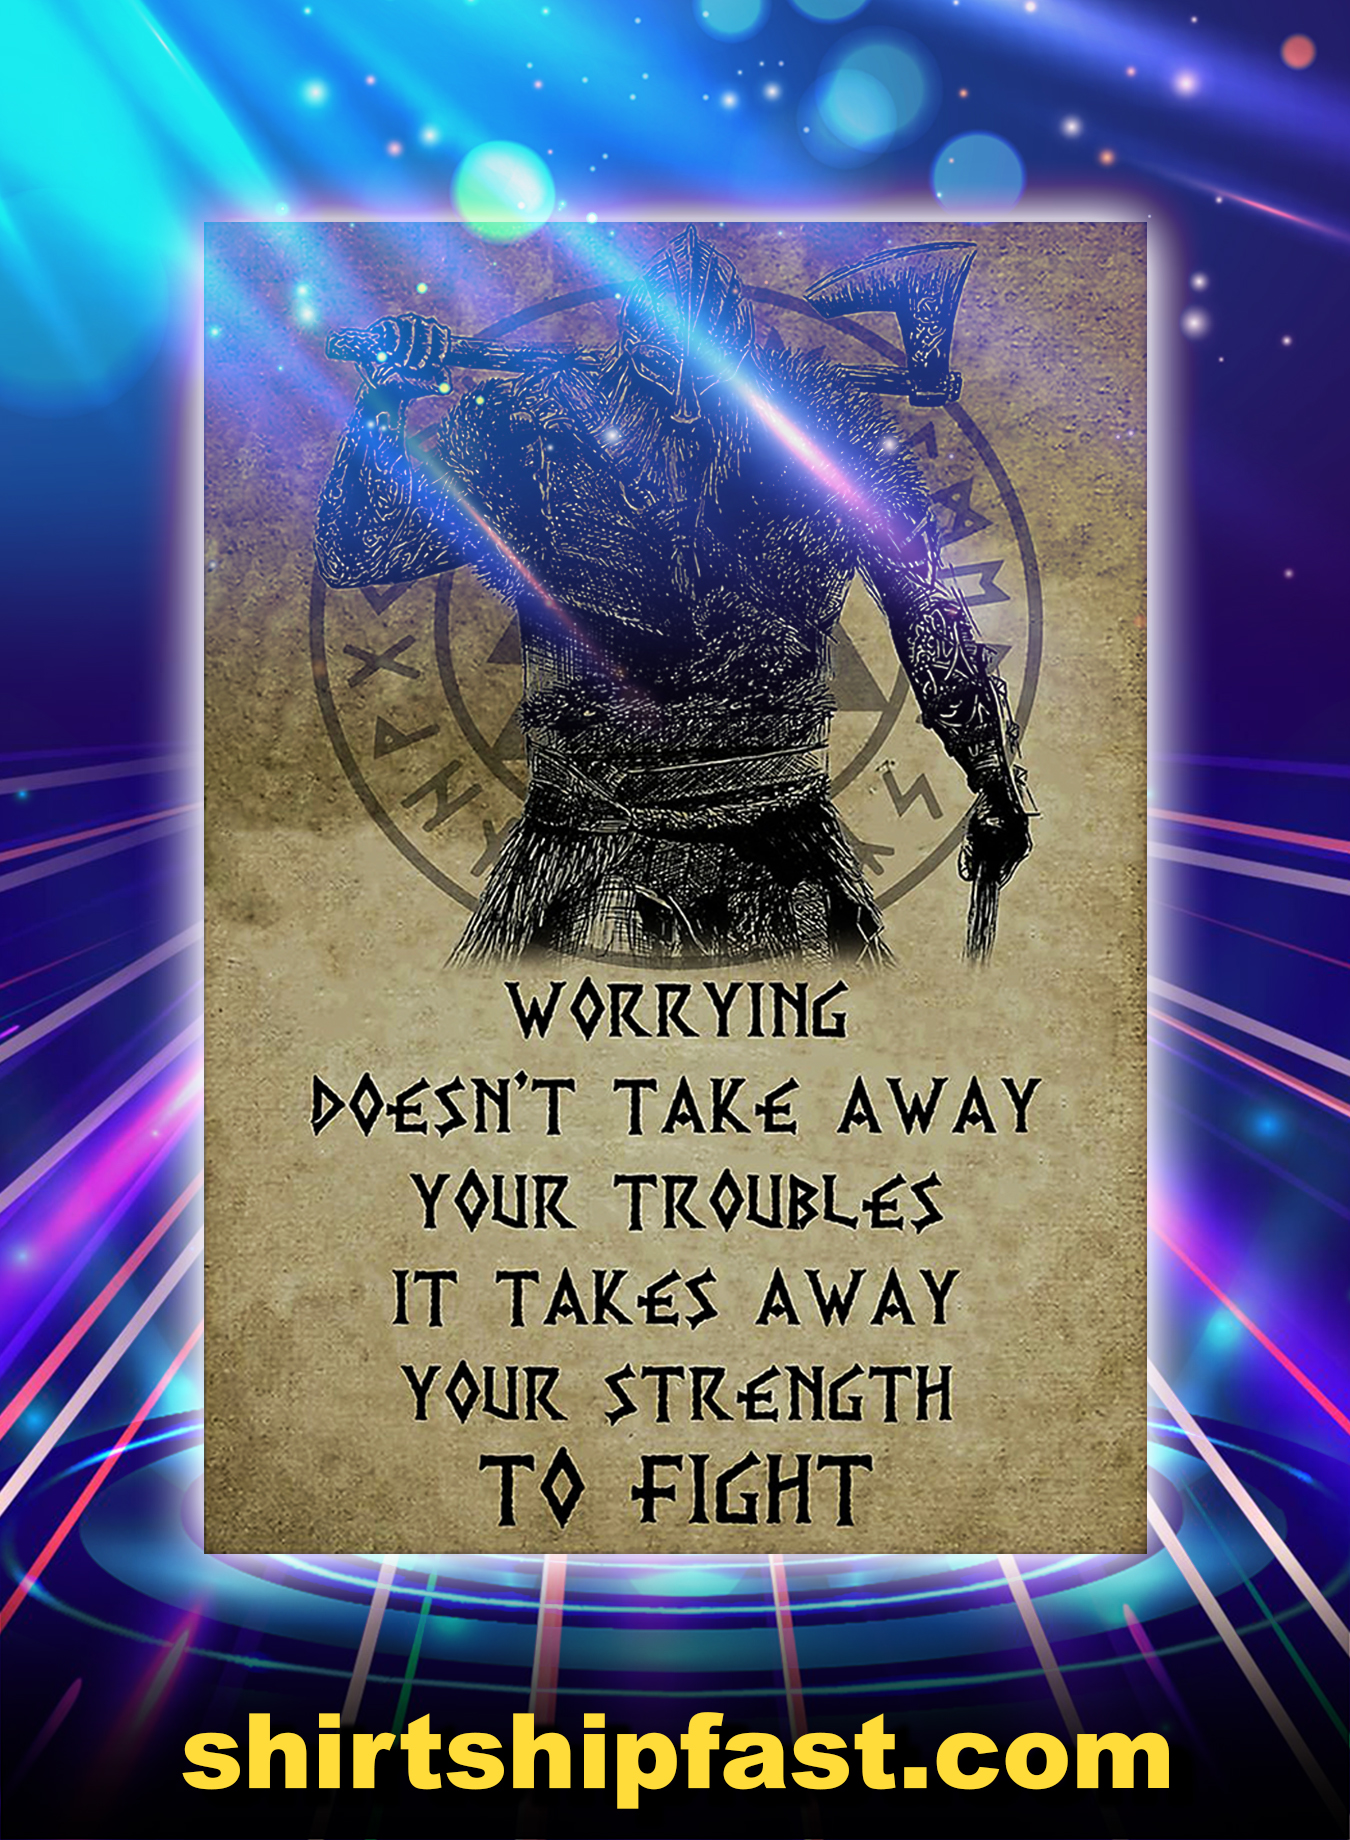 Viking Worrying Doesn't Take Away Your Troubles It Takes Away Your Strength To Fight Poster - A3